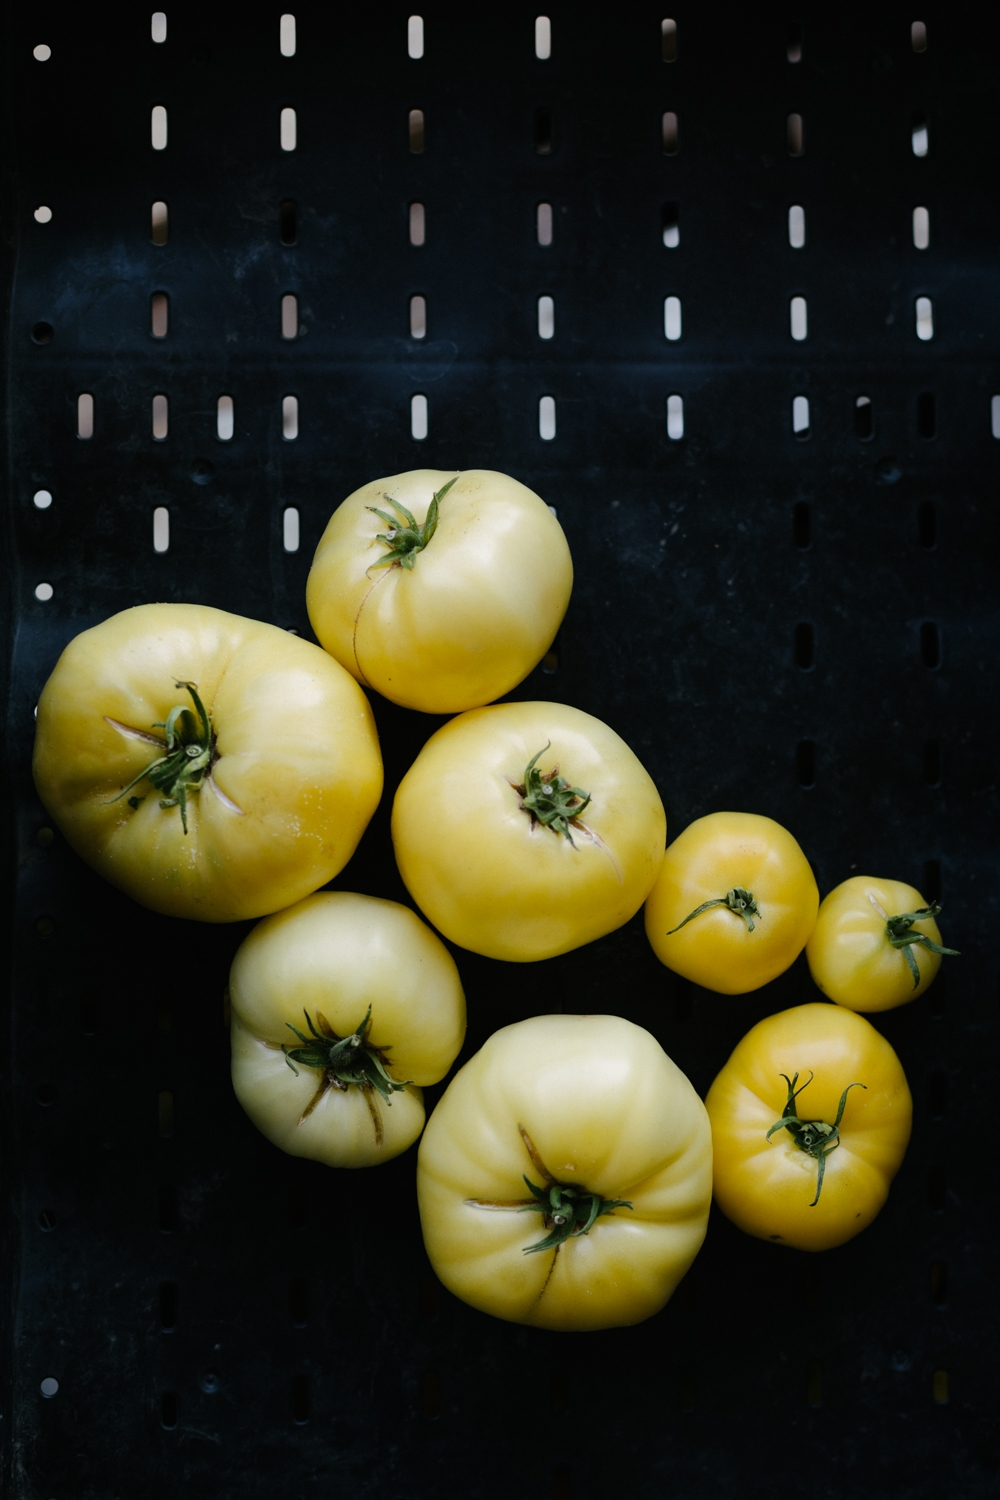 Jimena-Peck-Denver-Lifestyle-Editorial-Photographer-Native-Hill-Farm-The-Veggies-Yellow-Tomatoes